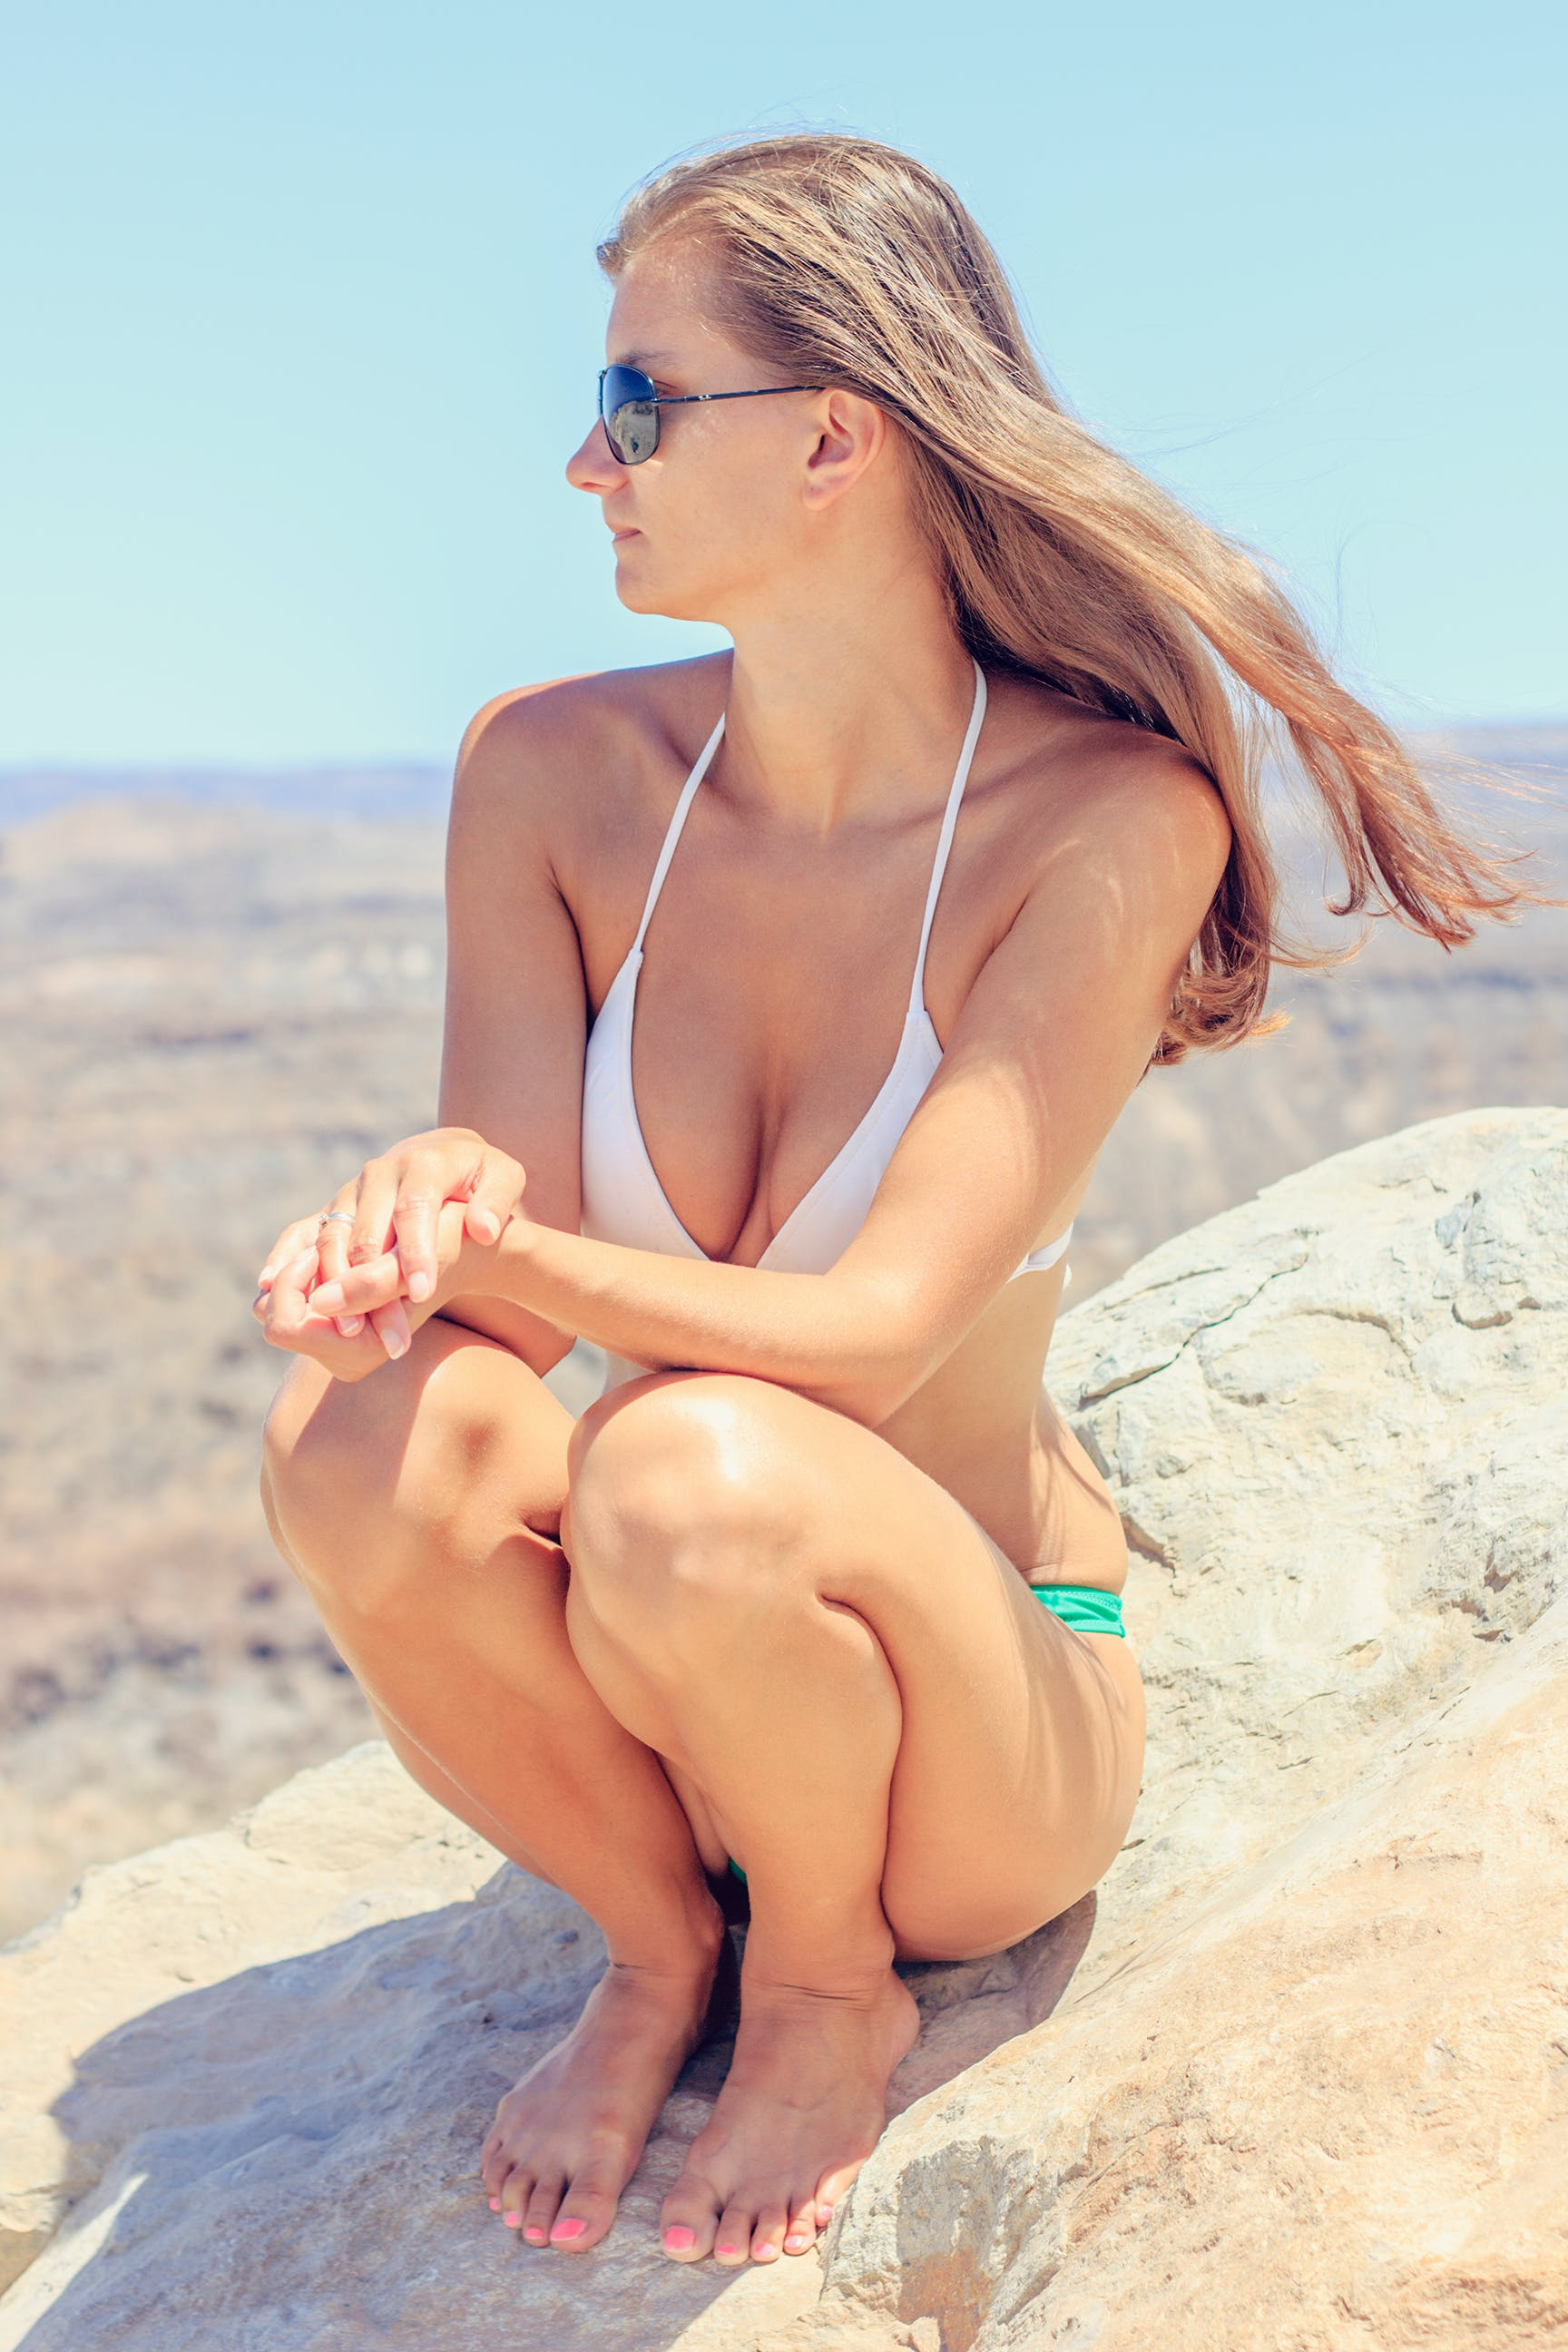 Free stock photo of sky, person, sunglasses, bikini